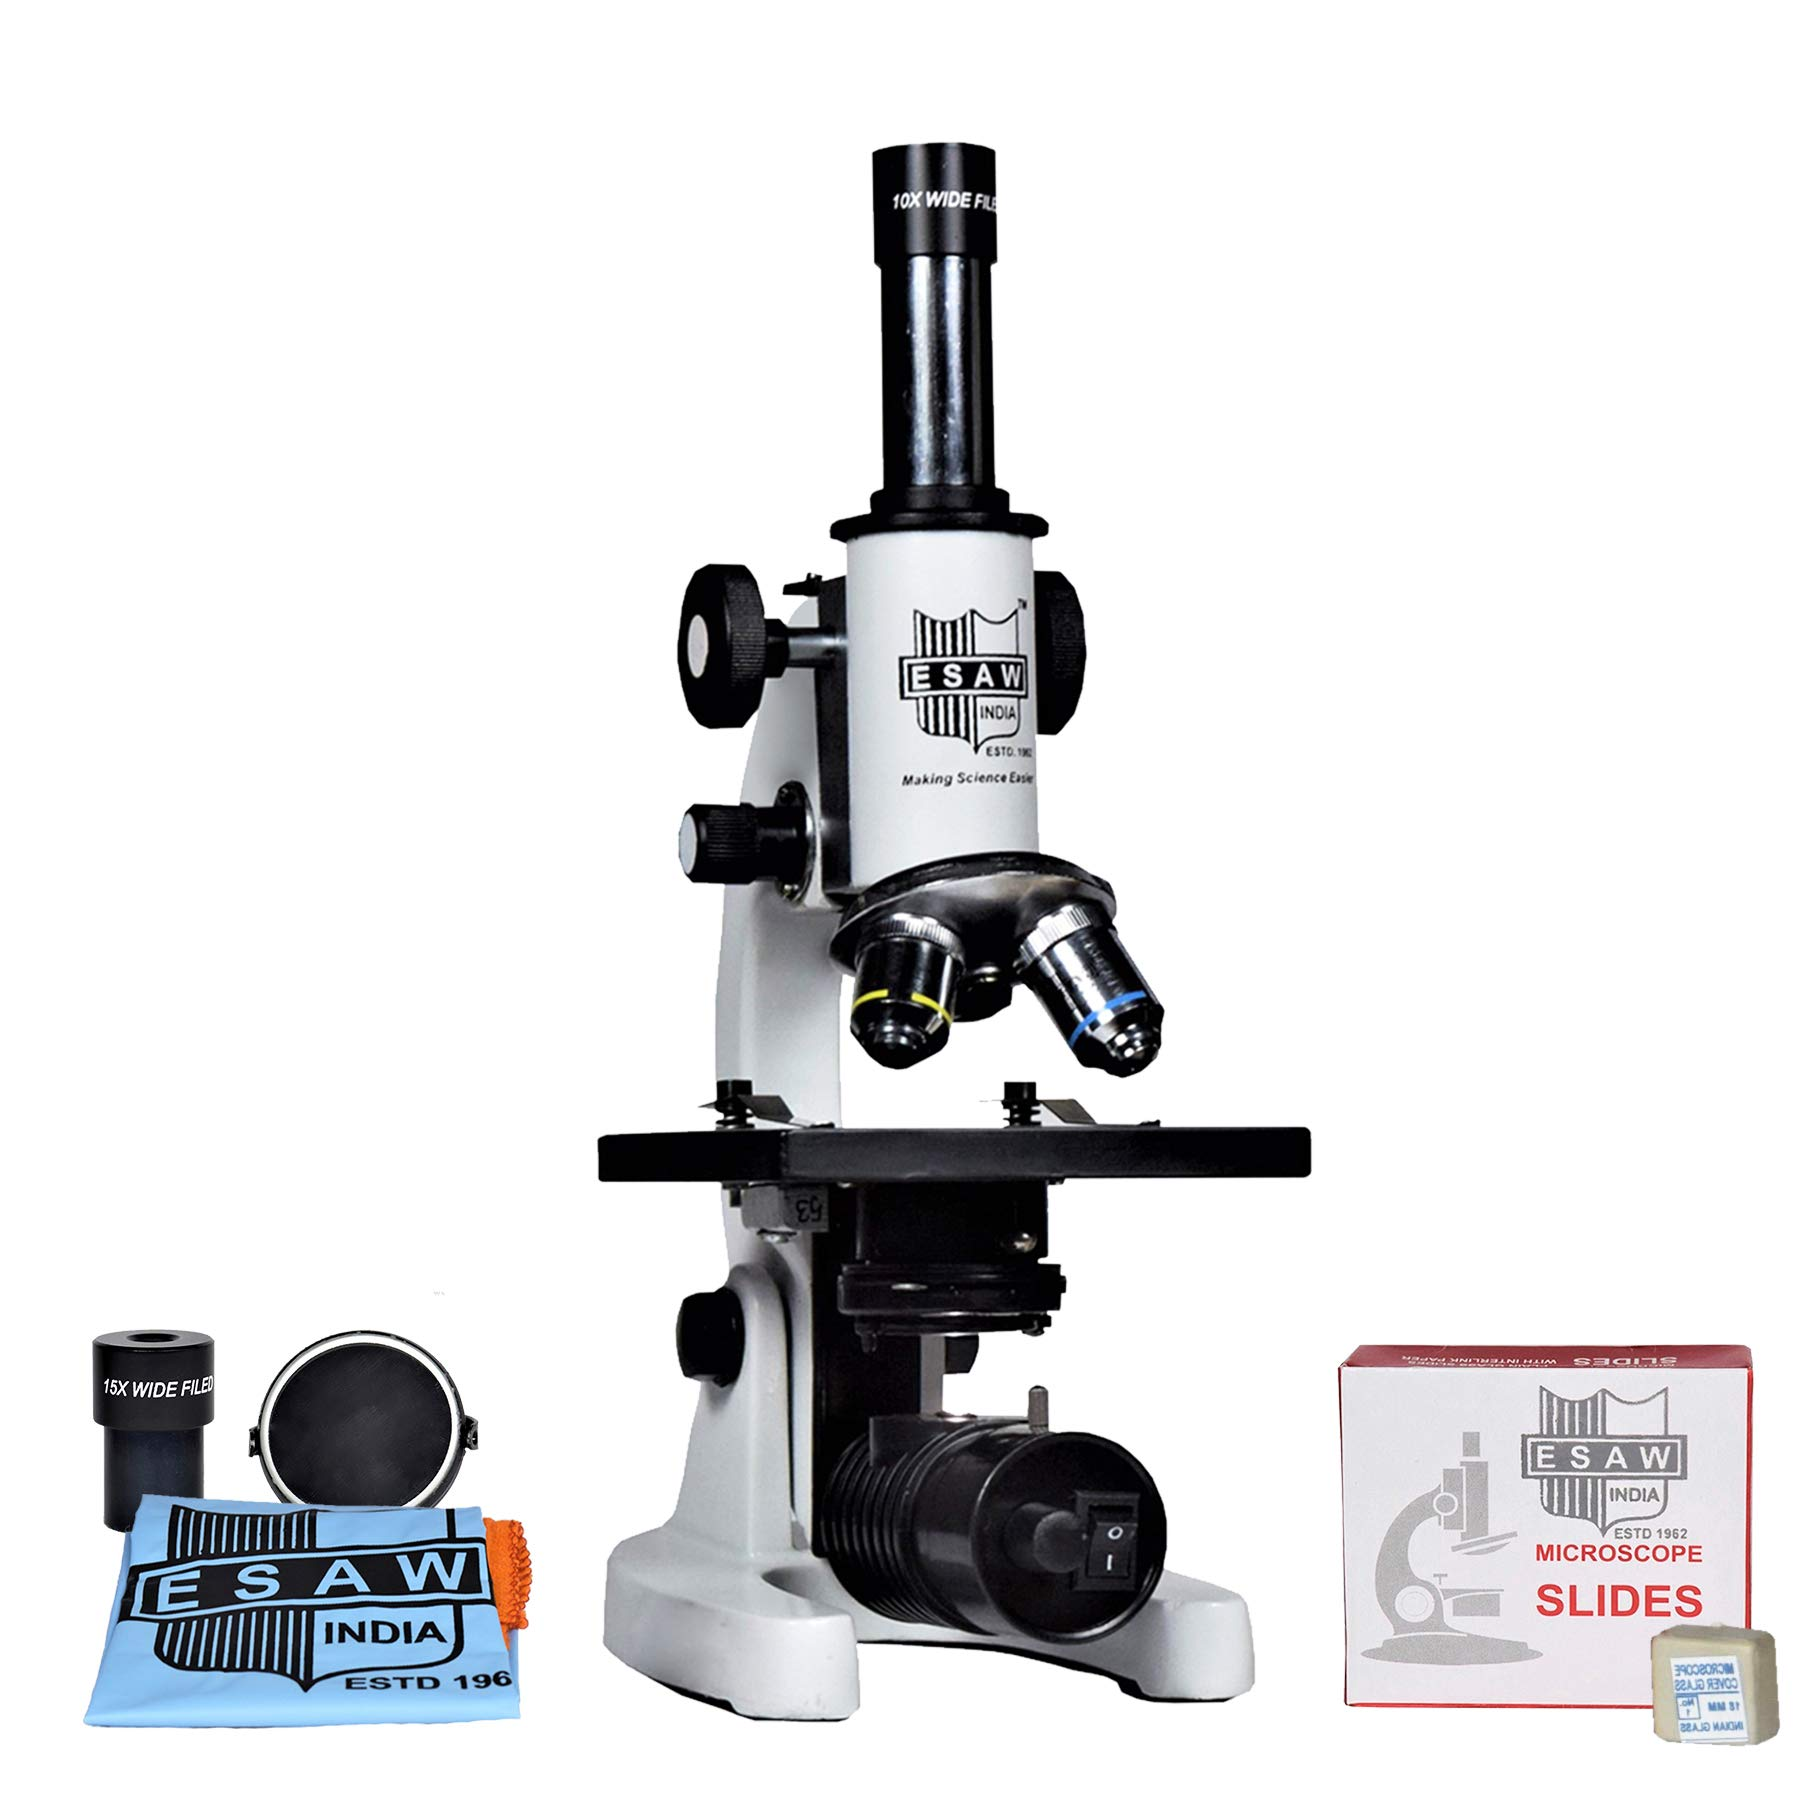 ESAW SM-02 Student Compound Microscope (Magnification 100X-675X) with 10X and 15X Wide Field Eyepieces Kit (50 Blank Slides, Cover Slips) product image